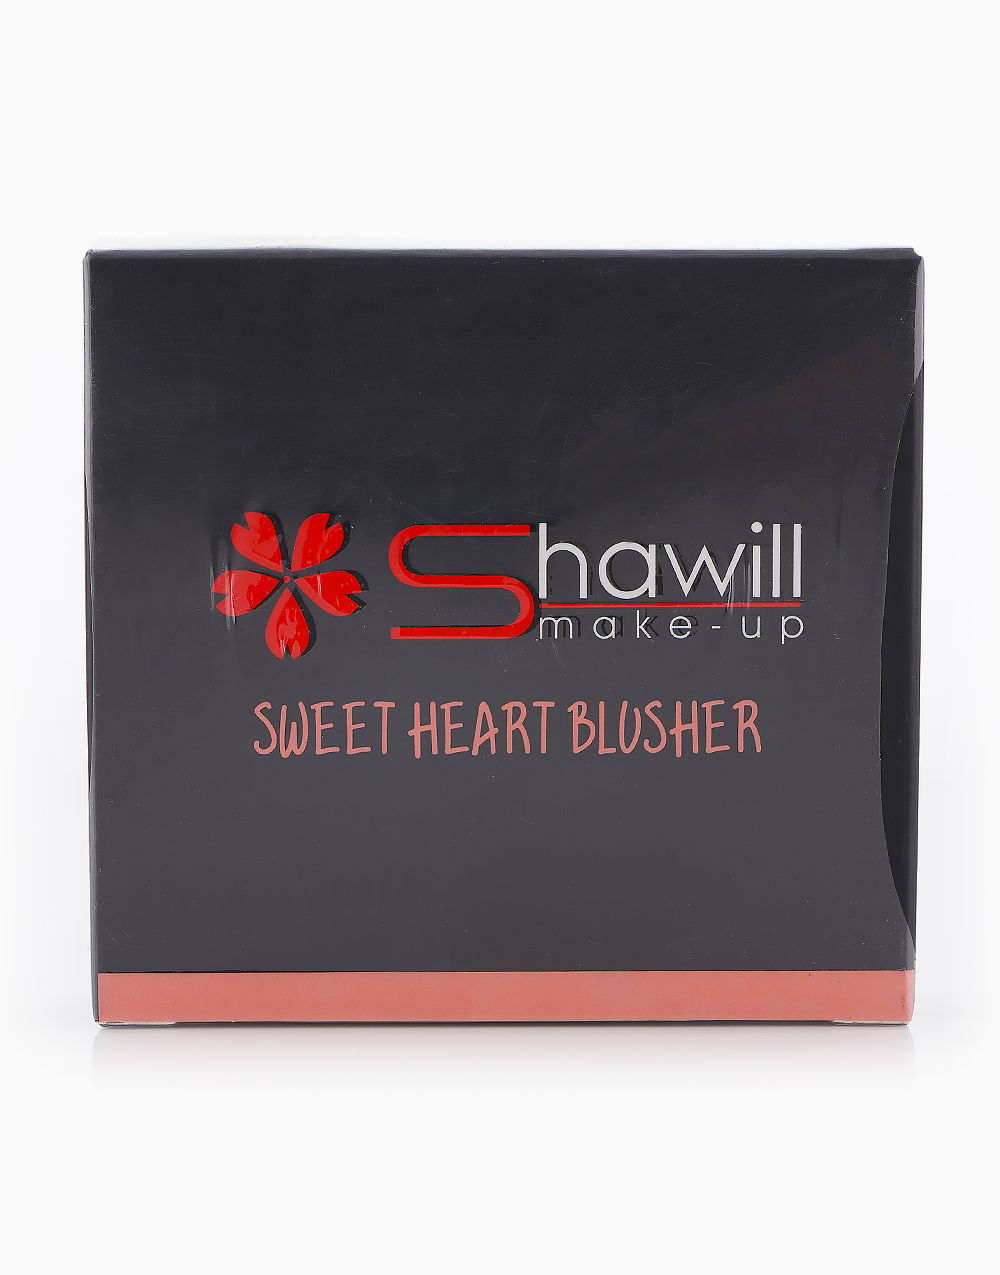 Sweet Heart Blusher by Shawill Cosmetics | #3